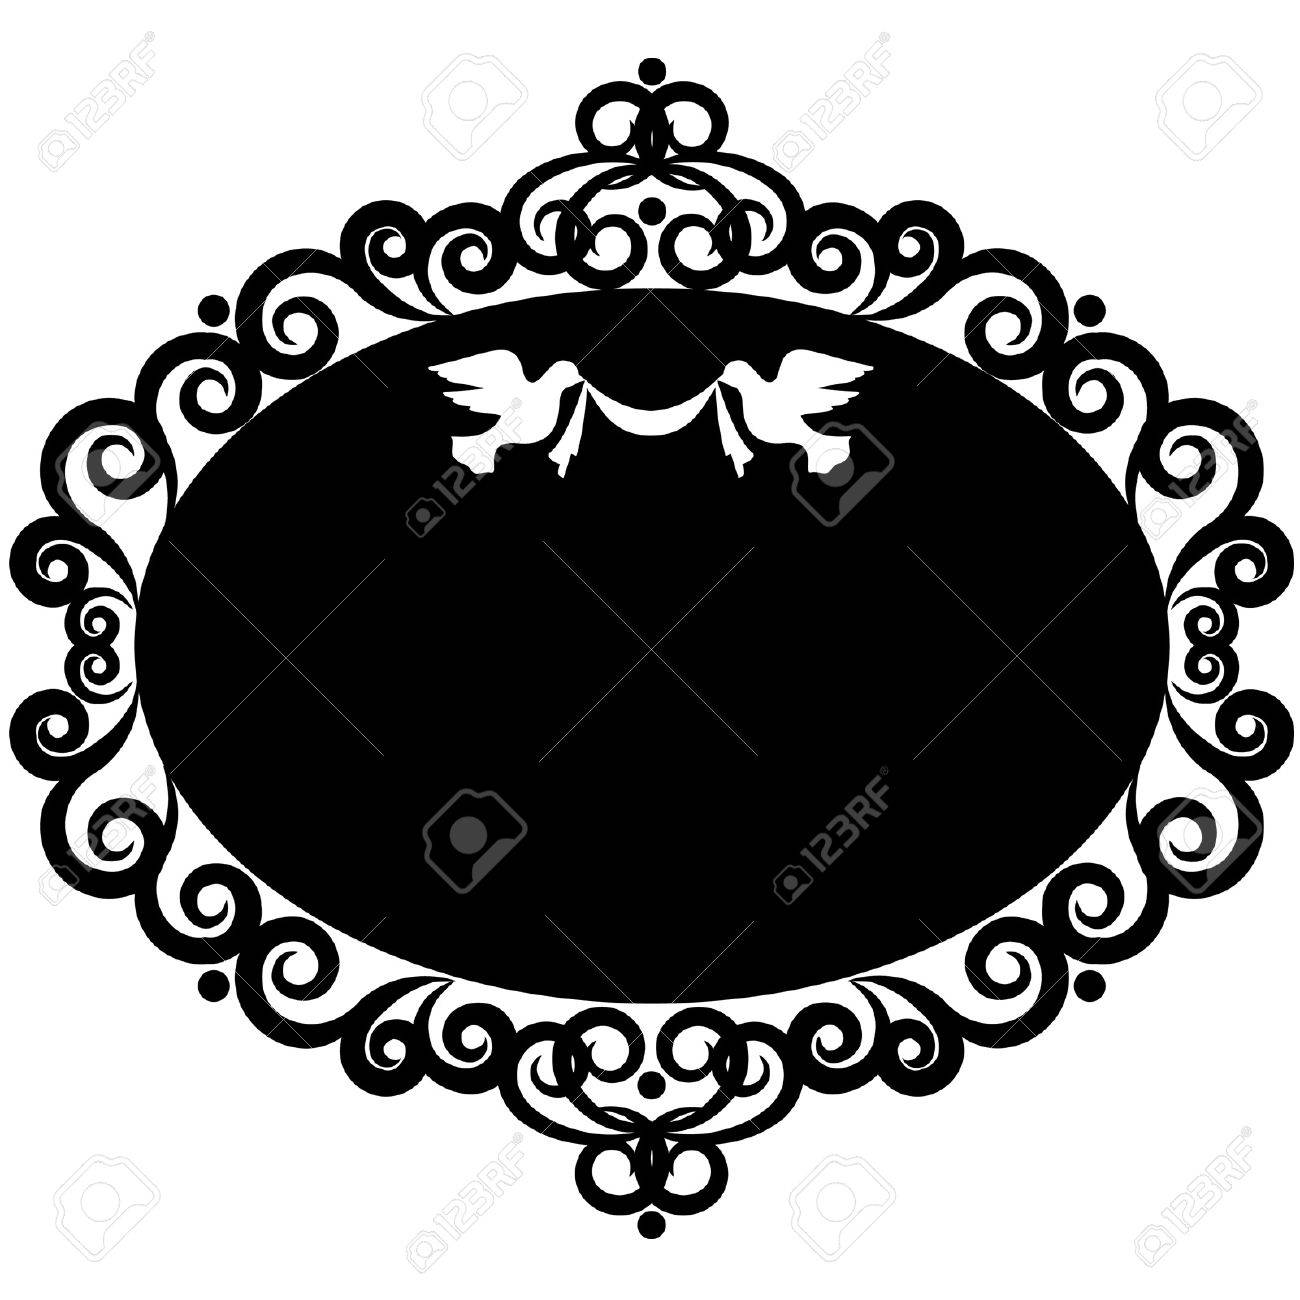 Vintage background with lace ornaments. Vector Stock Vector - 12080895